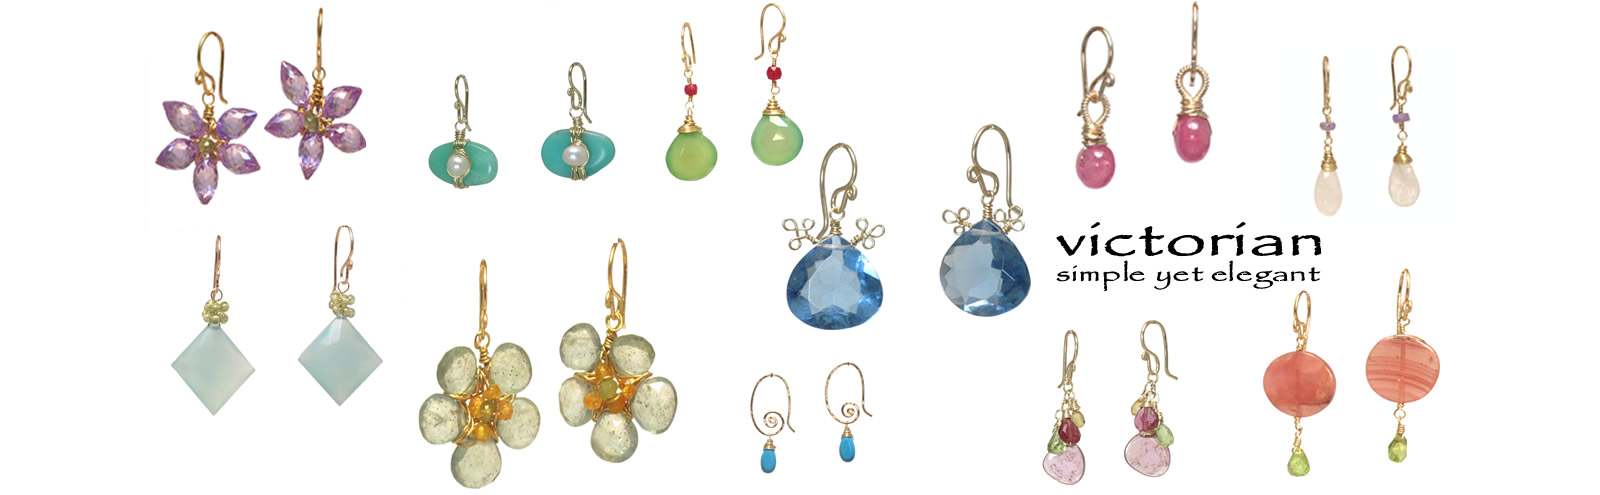 dainty yet elegant gemstone jewelry